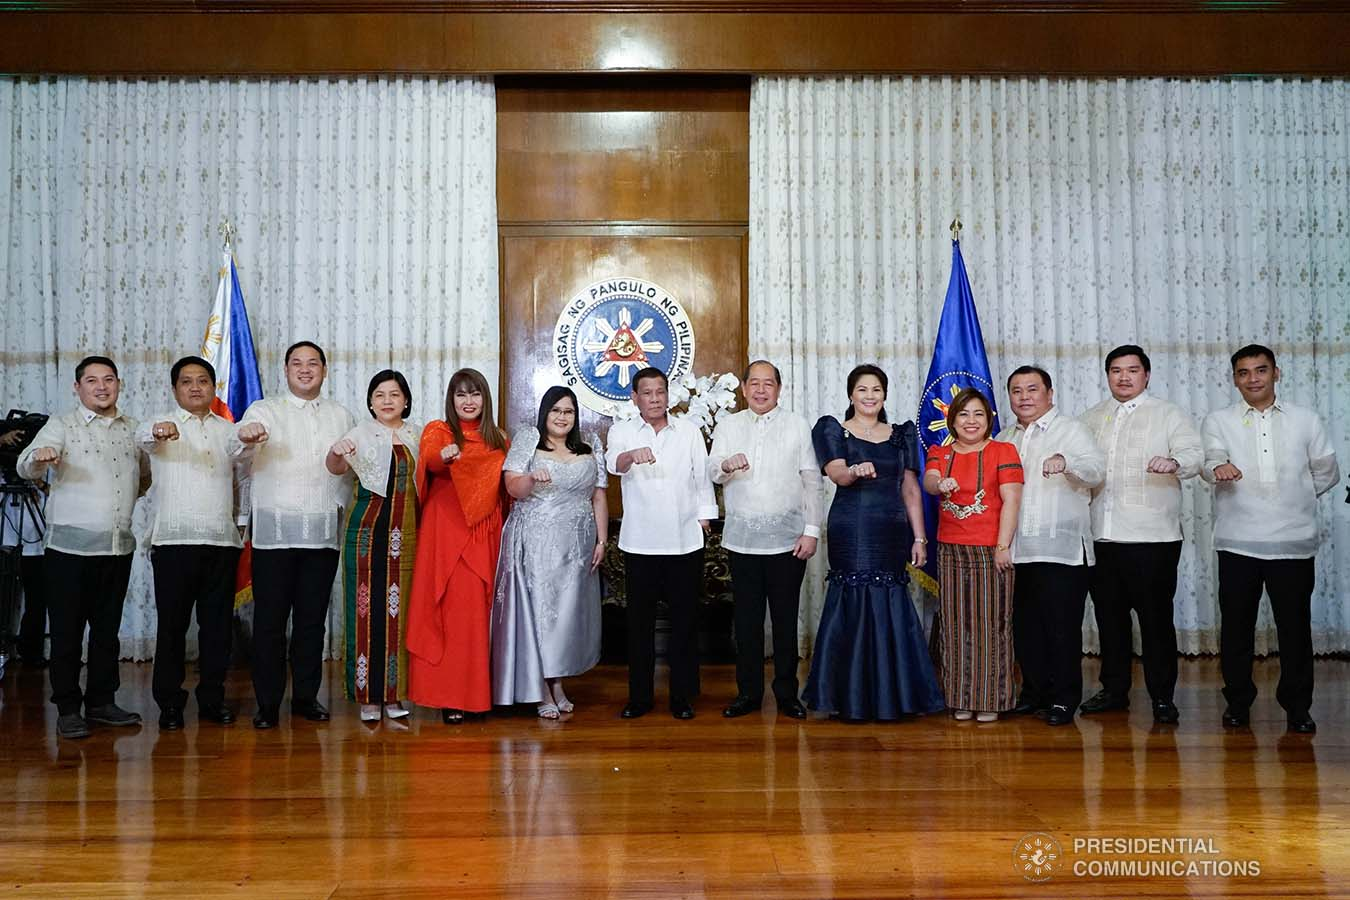 President Rodrigo Roa Duterte strikes his signature pose with the officers of the League of Vice Governors of the Philippines during their oath-taking ceremony at the Malacañan Palace on September 10, 2019. KING RODRIGUEZ/PRESIDENTIAL PHOTO